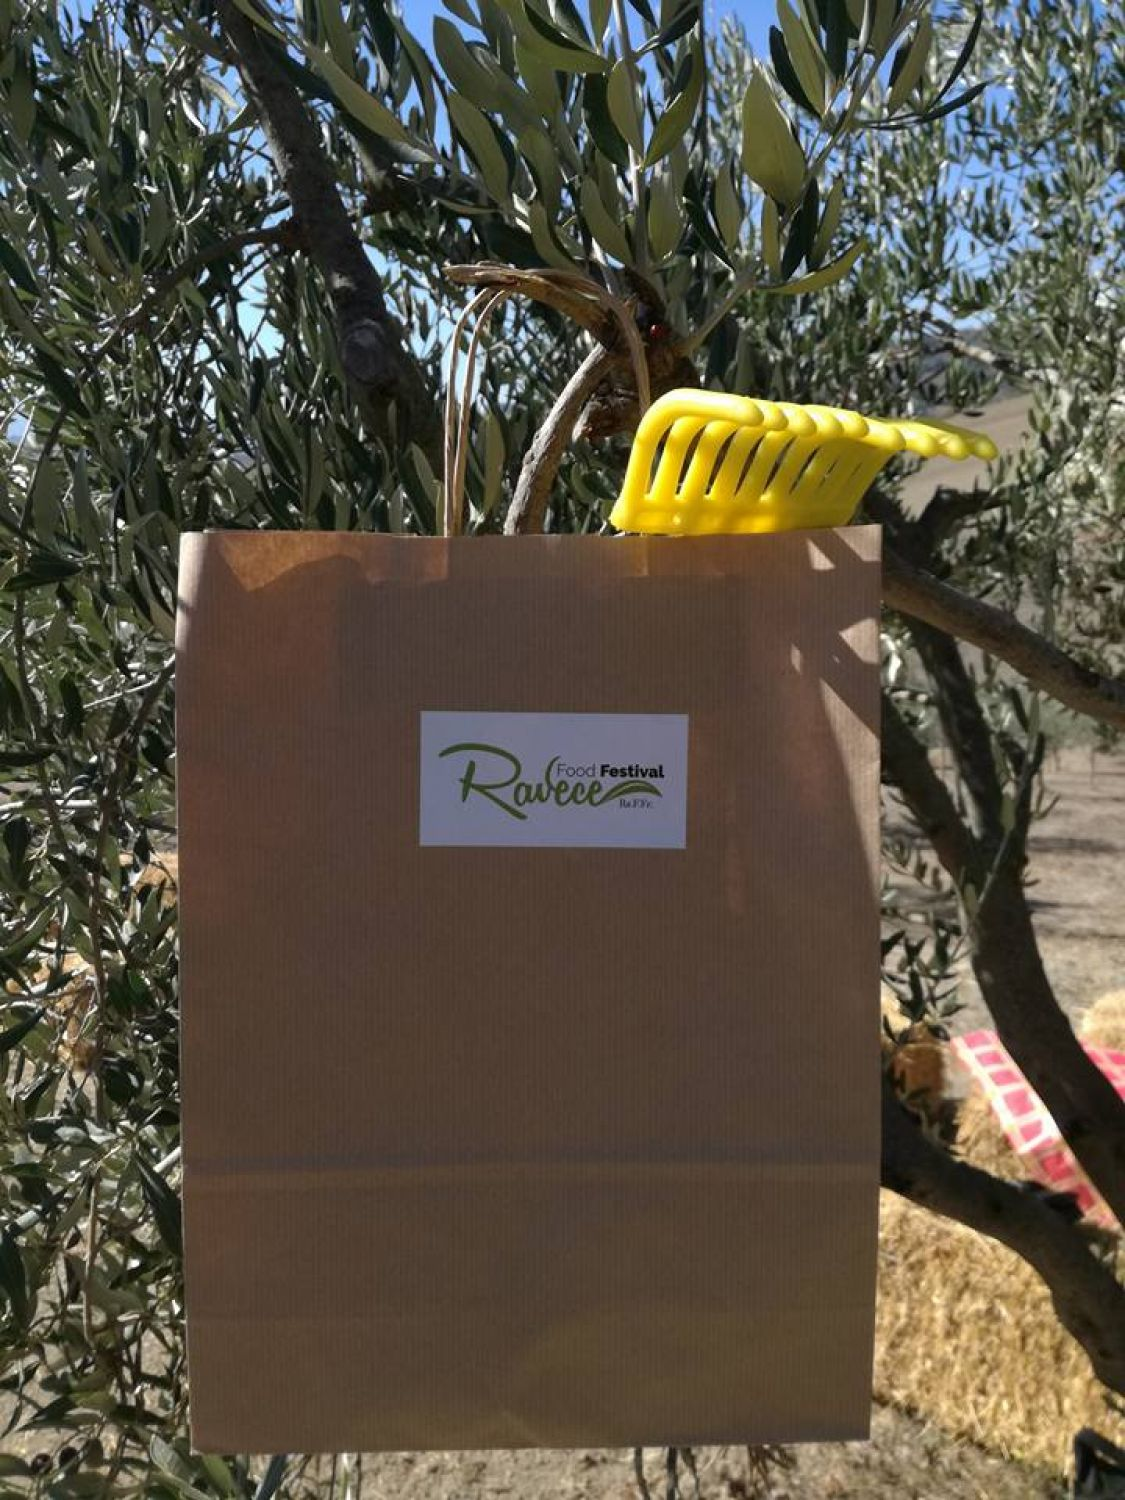 Zungoli Tour: Discovering the Green Gold. The Harvesting and milling of olives in Irpinia